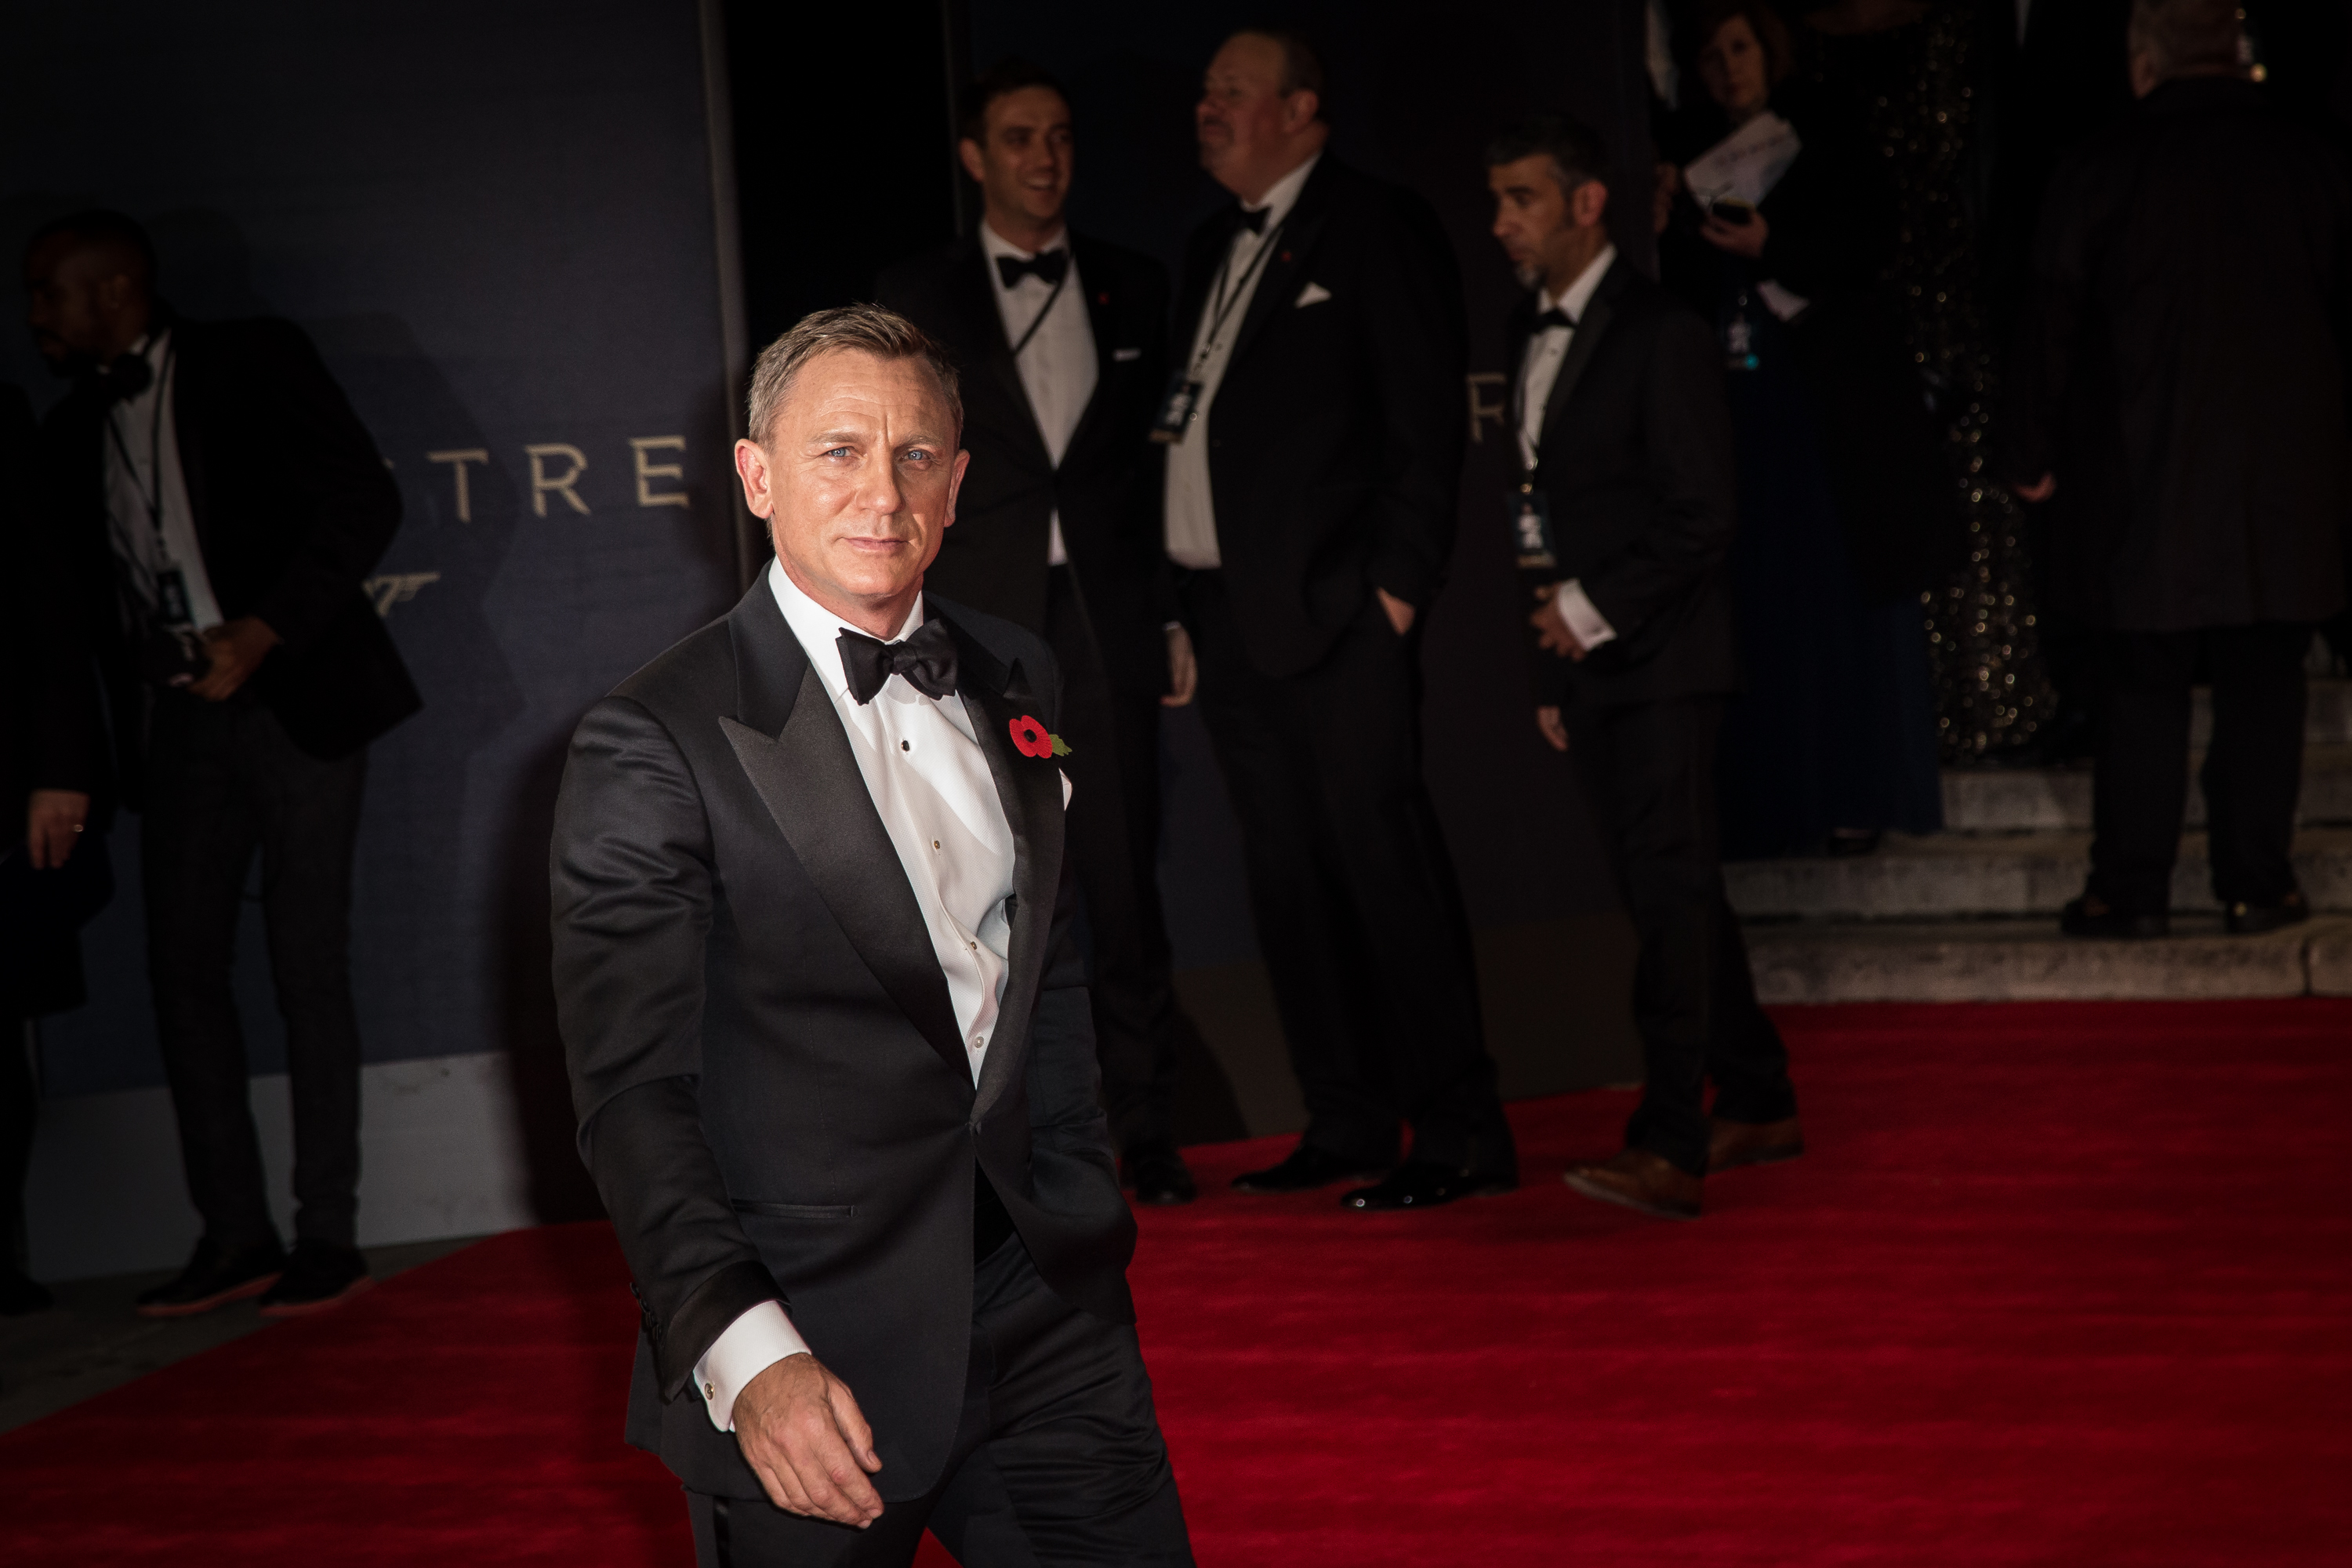 Daniel Craig poses for photographers upon arrival at the world premiere of the latest James Bond film, 'Spectre' in London, Monday, Oct. 26, 2015. (Photo by Vianney Le Caer/Invision/AP)